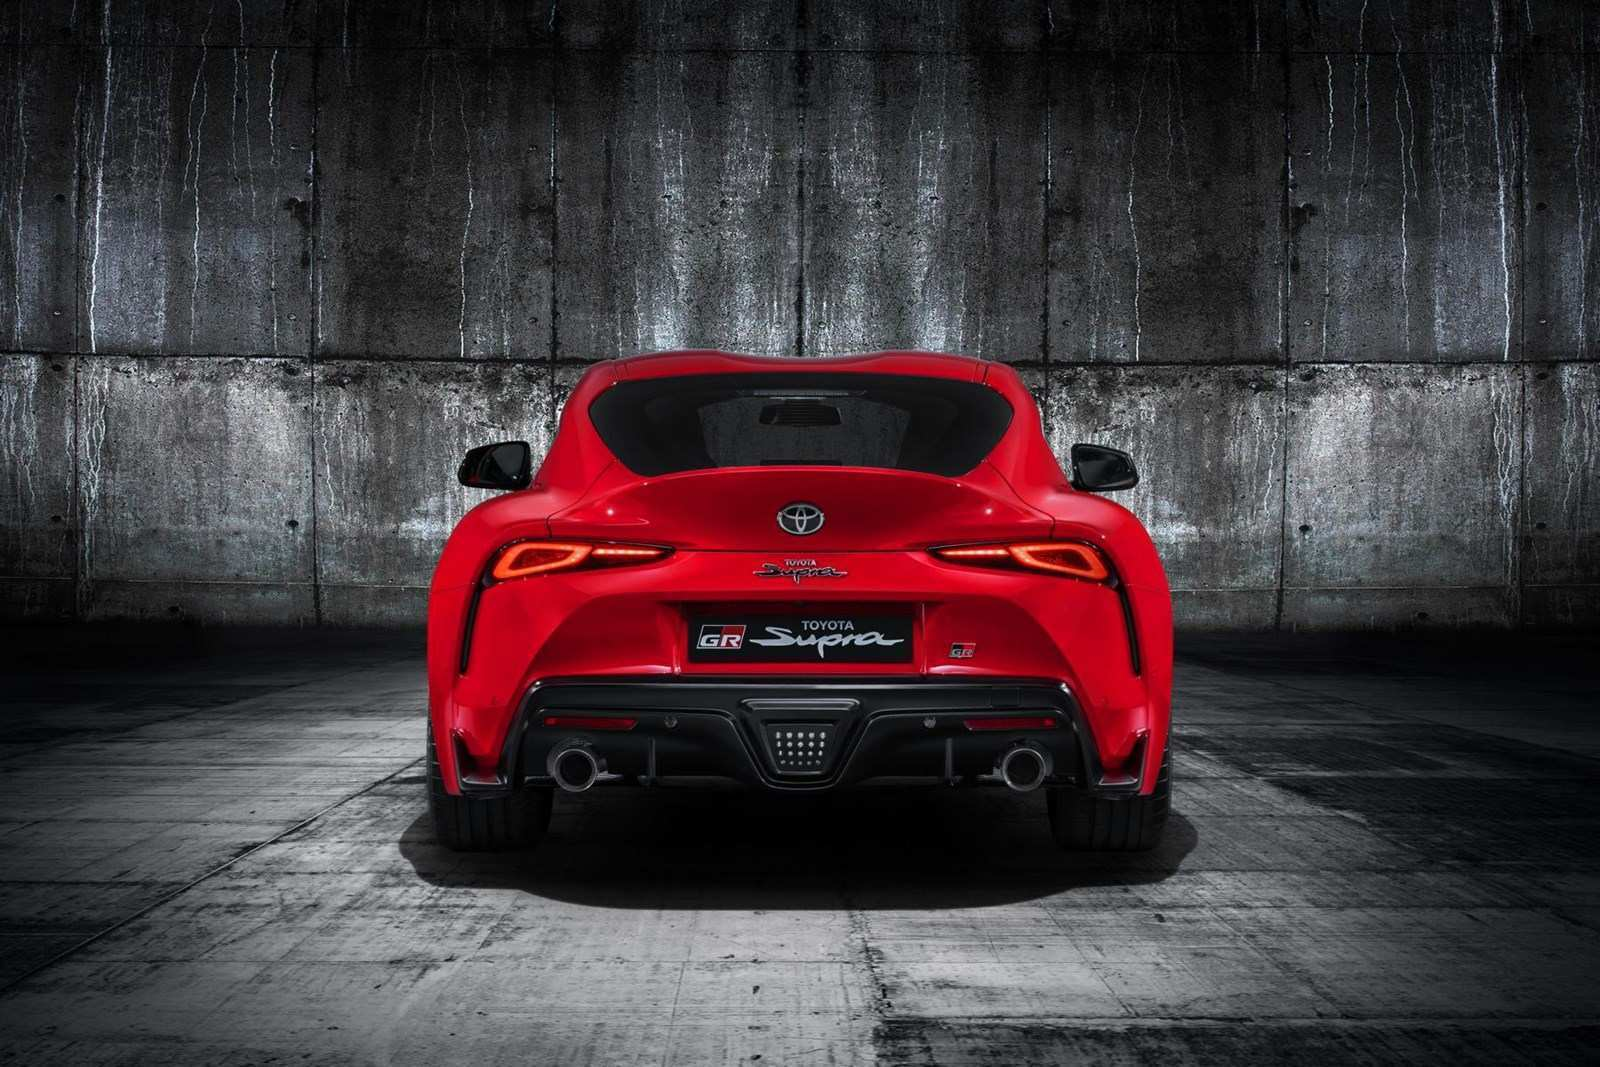 76 The Best Toyota Supra 2019 Images